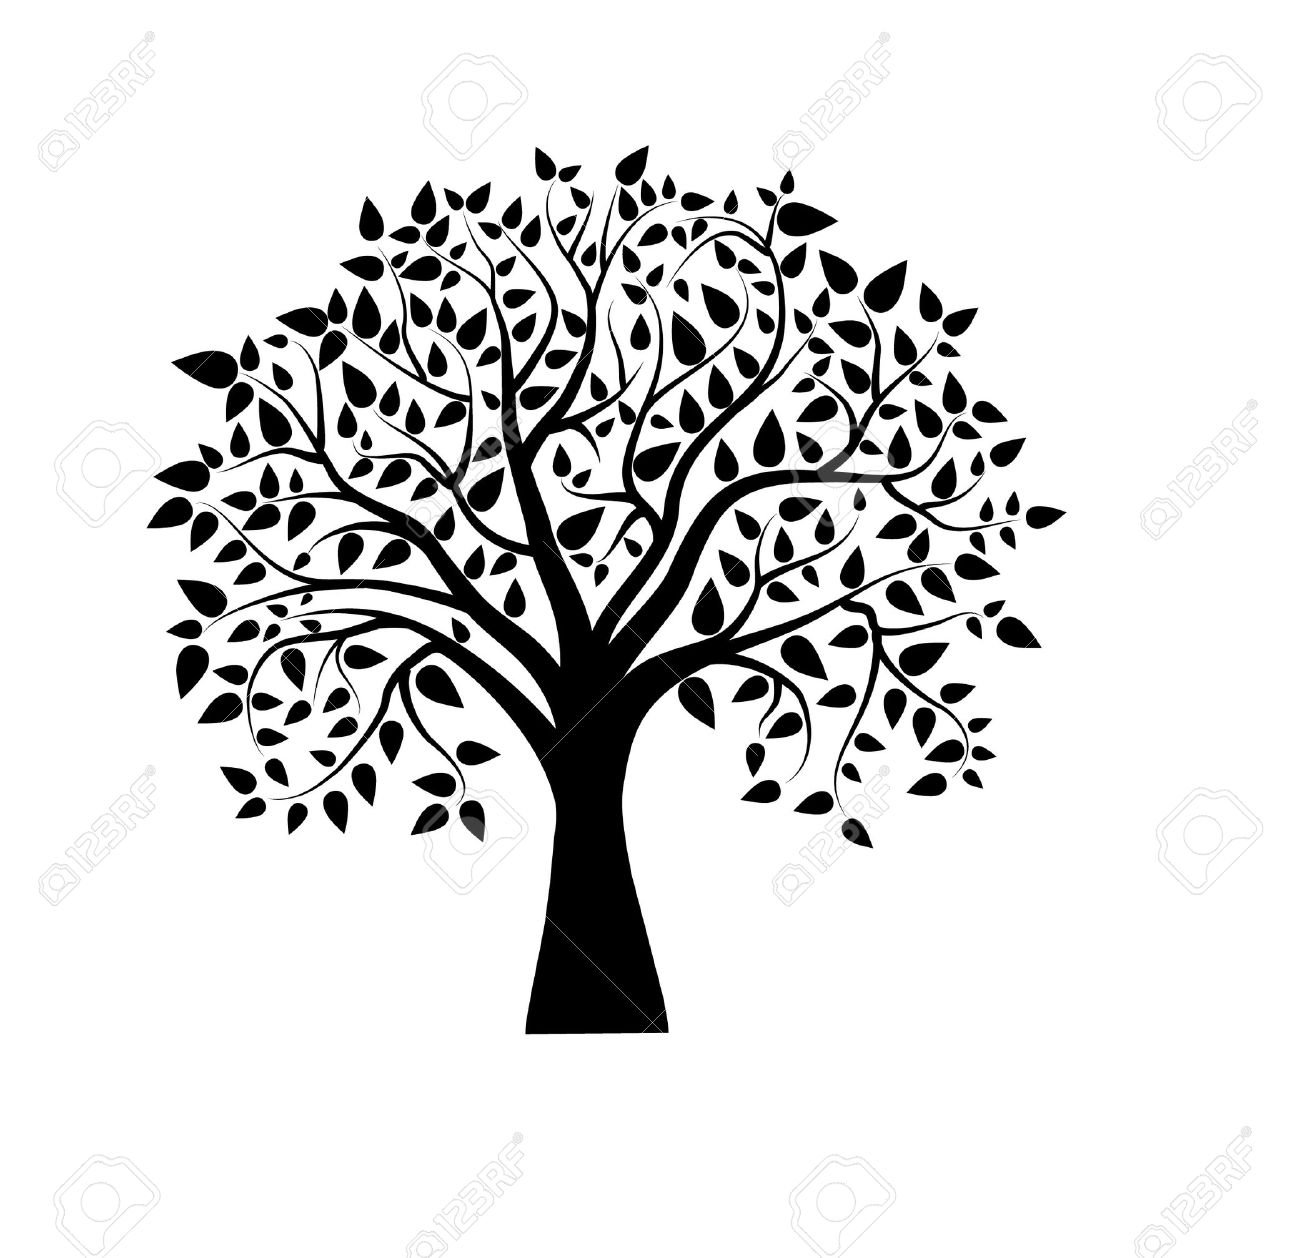 Vector tree in black and white - 18392402